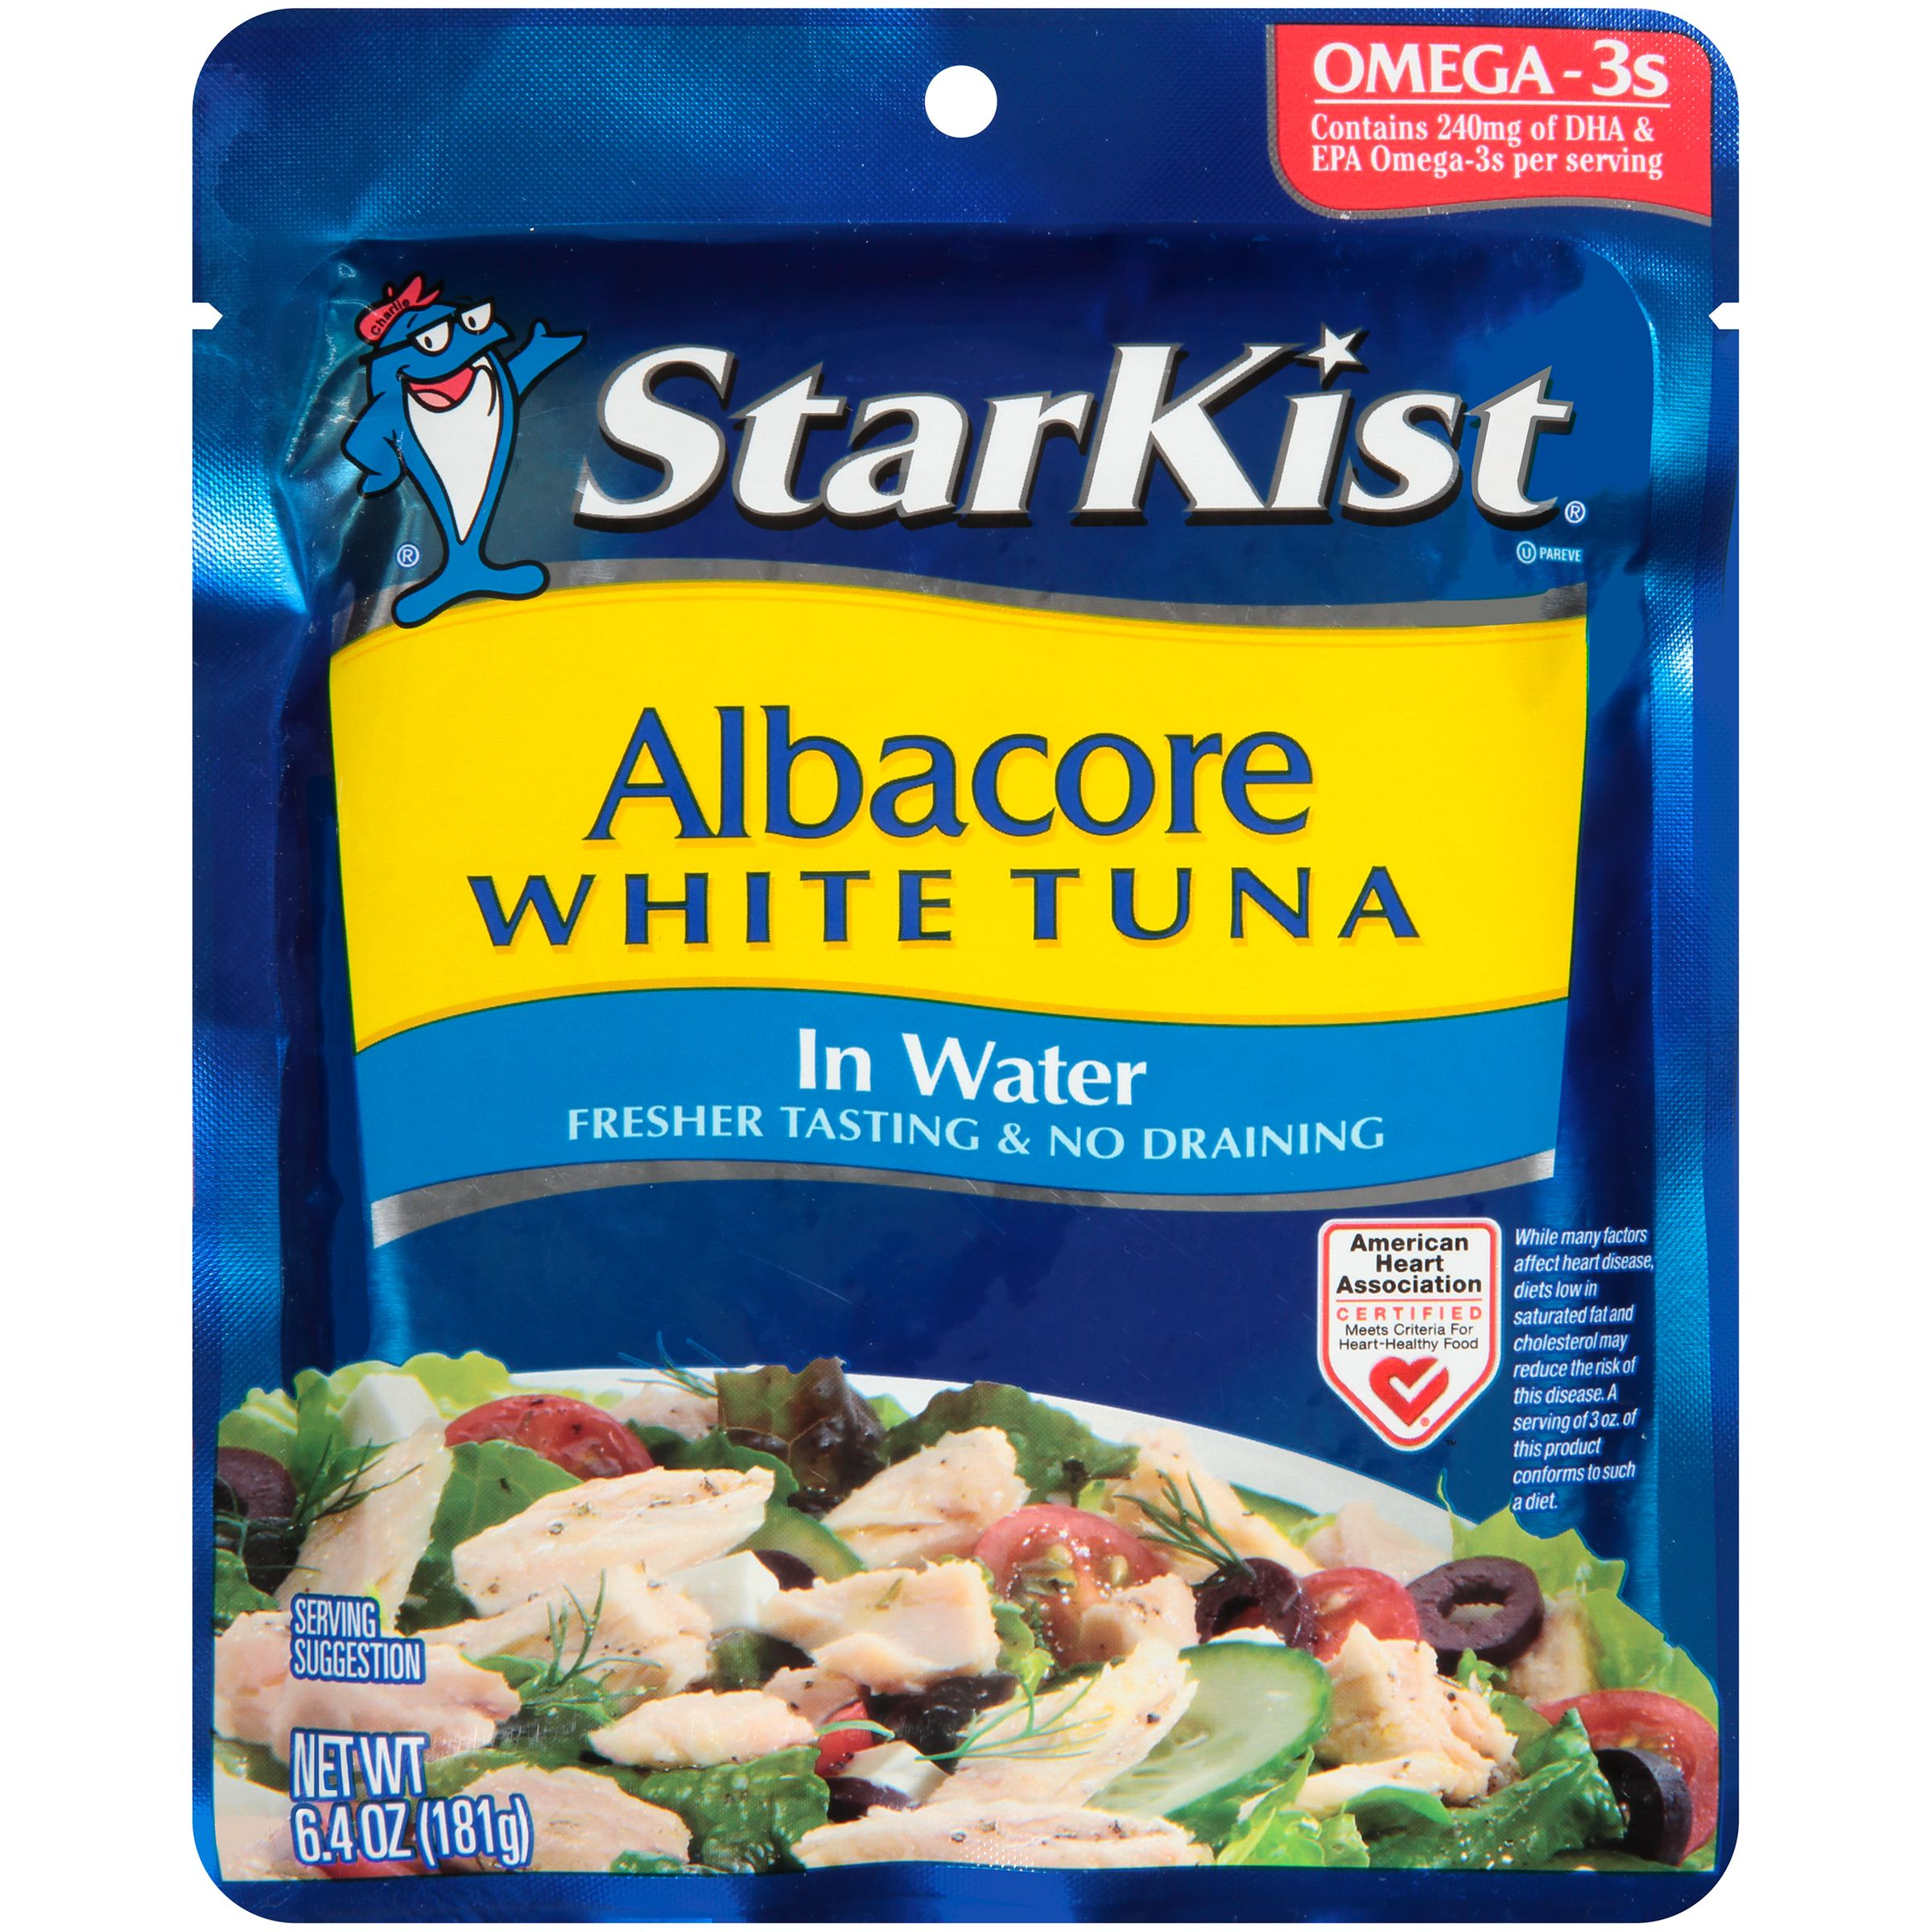 StarKist Albacore White Tuna Pouch in Water, 6.4 oz Pouch